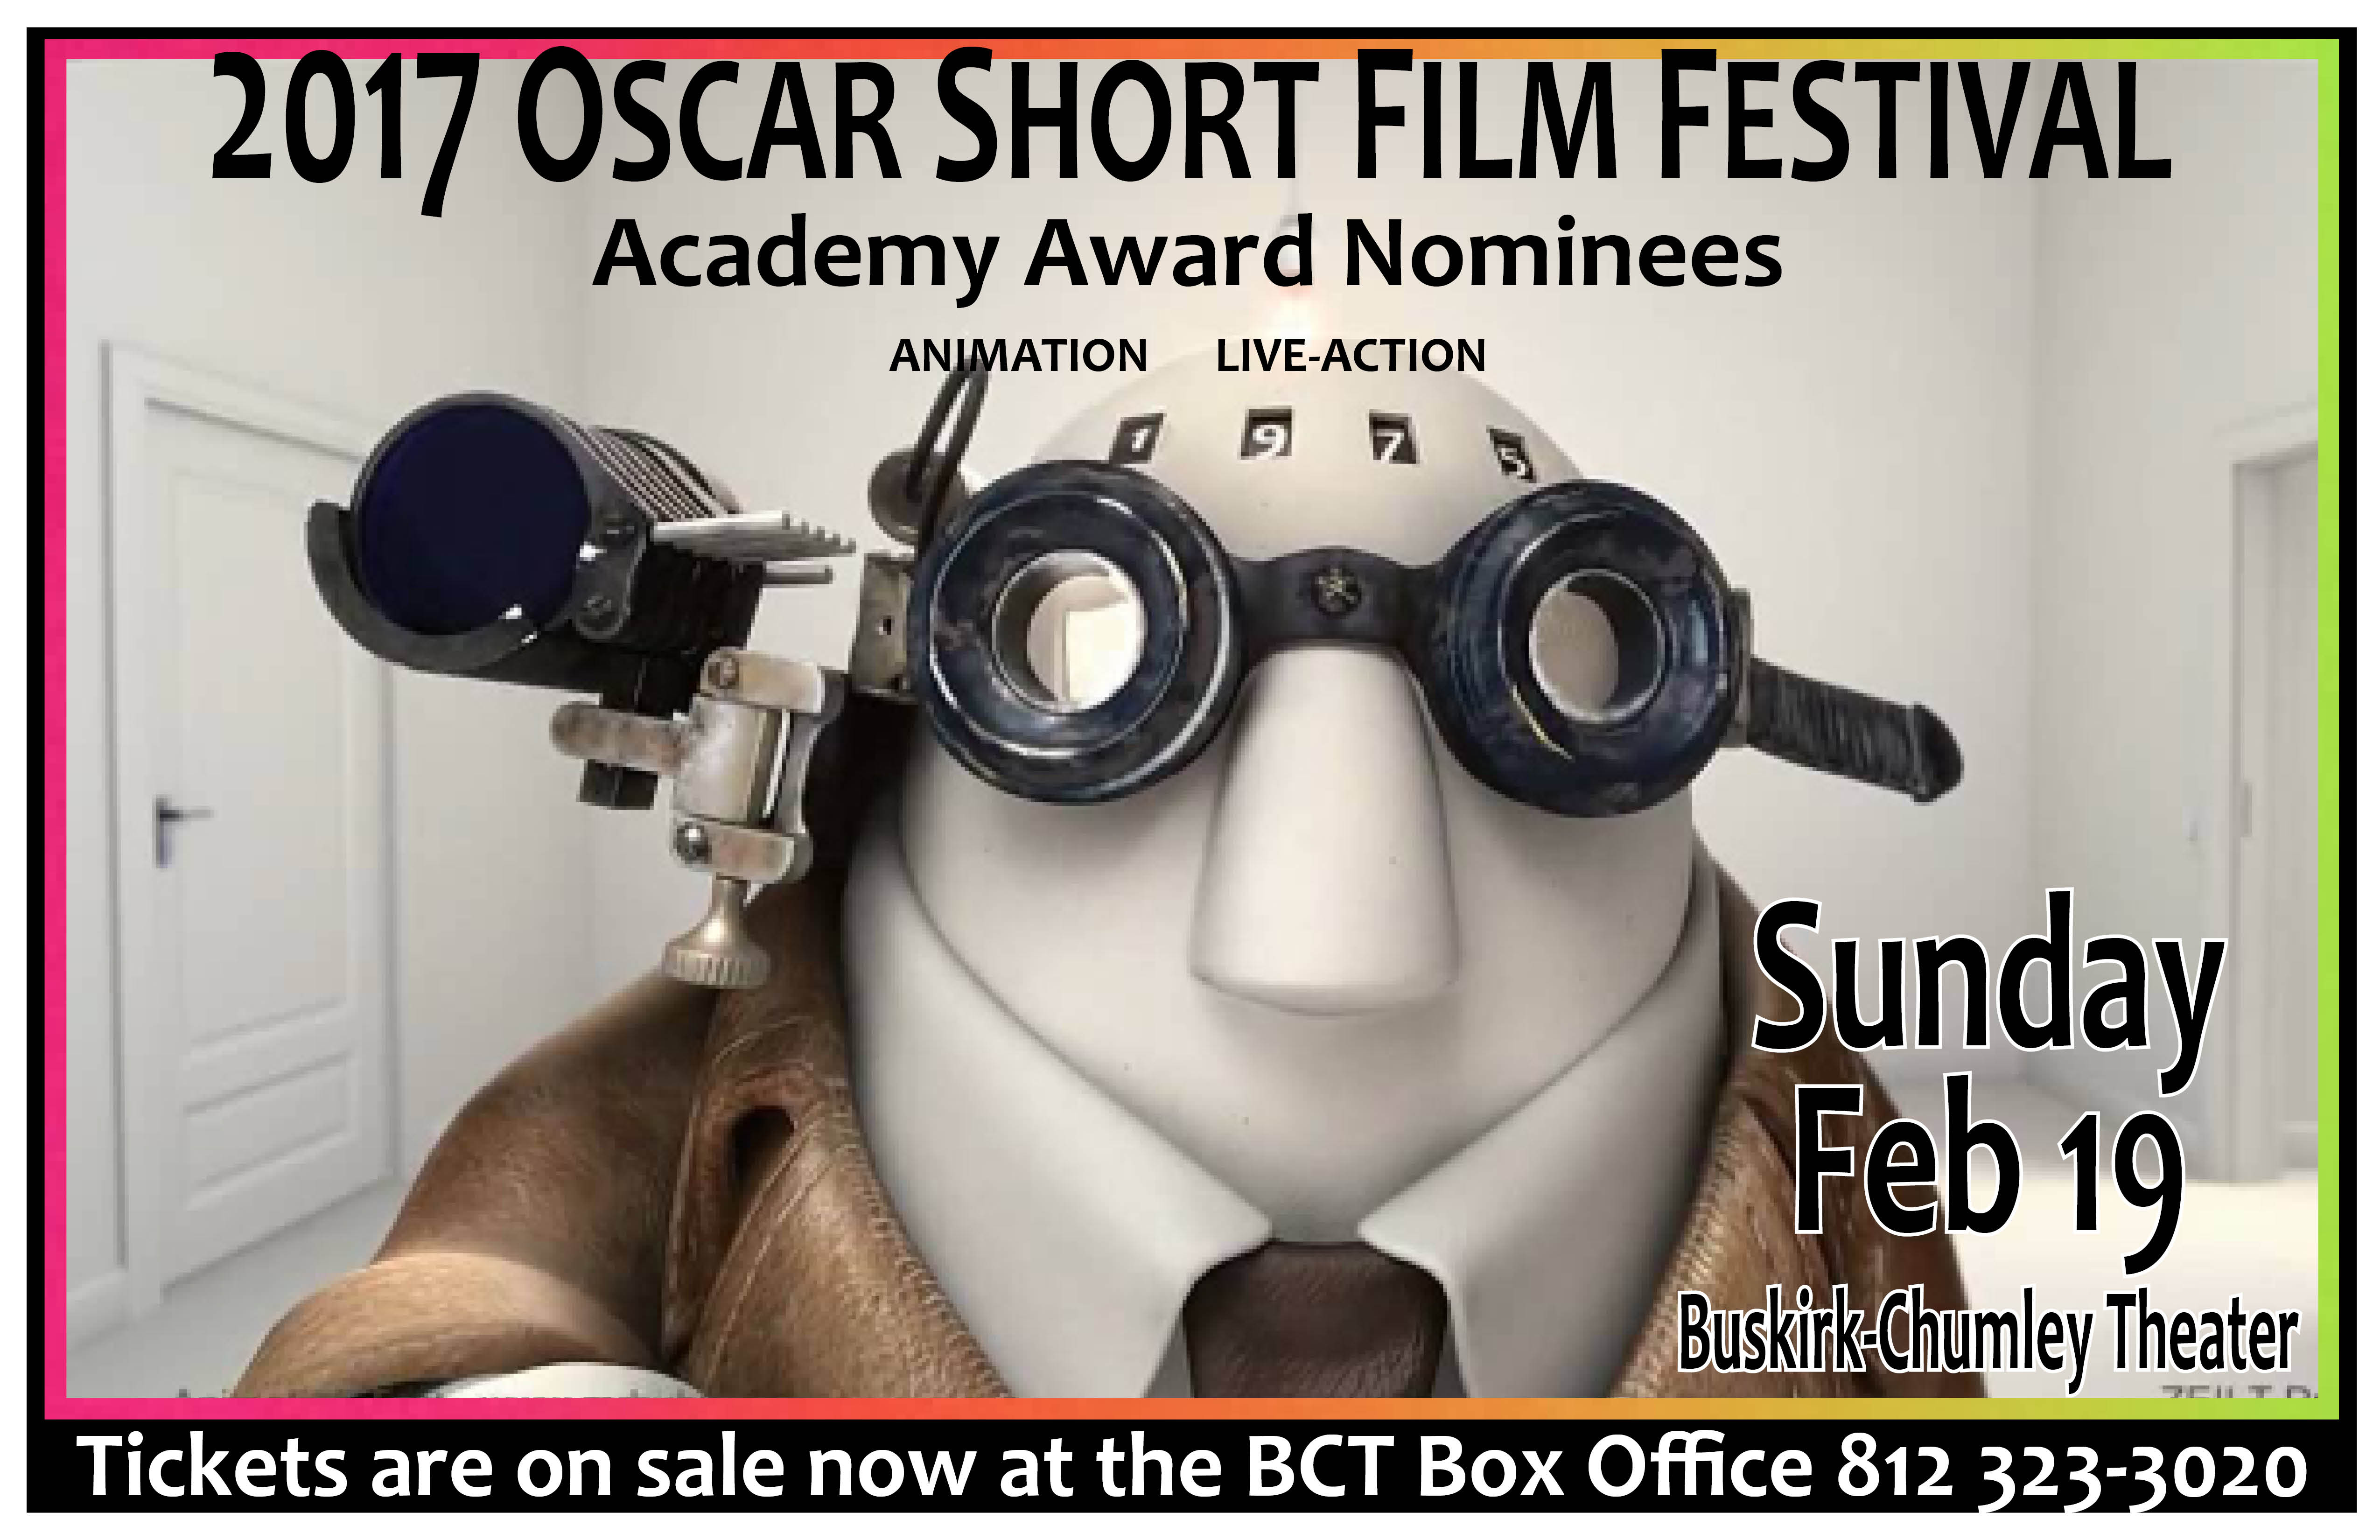 2017 Oscar Shorts poster 11X17 BCT ONLY